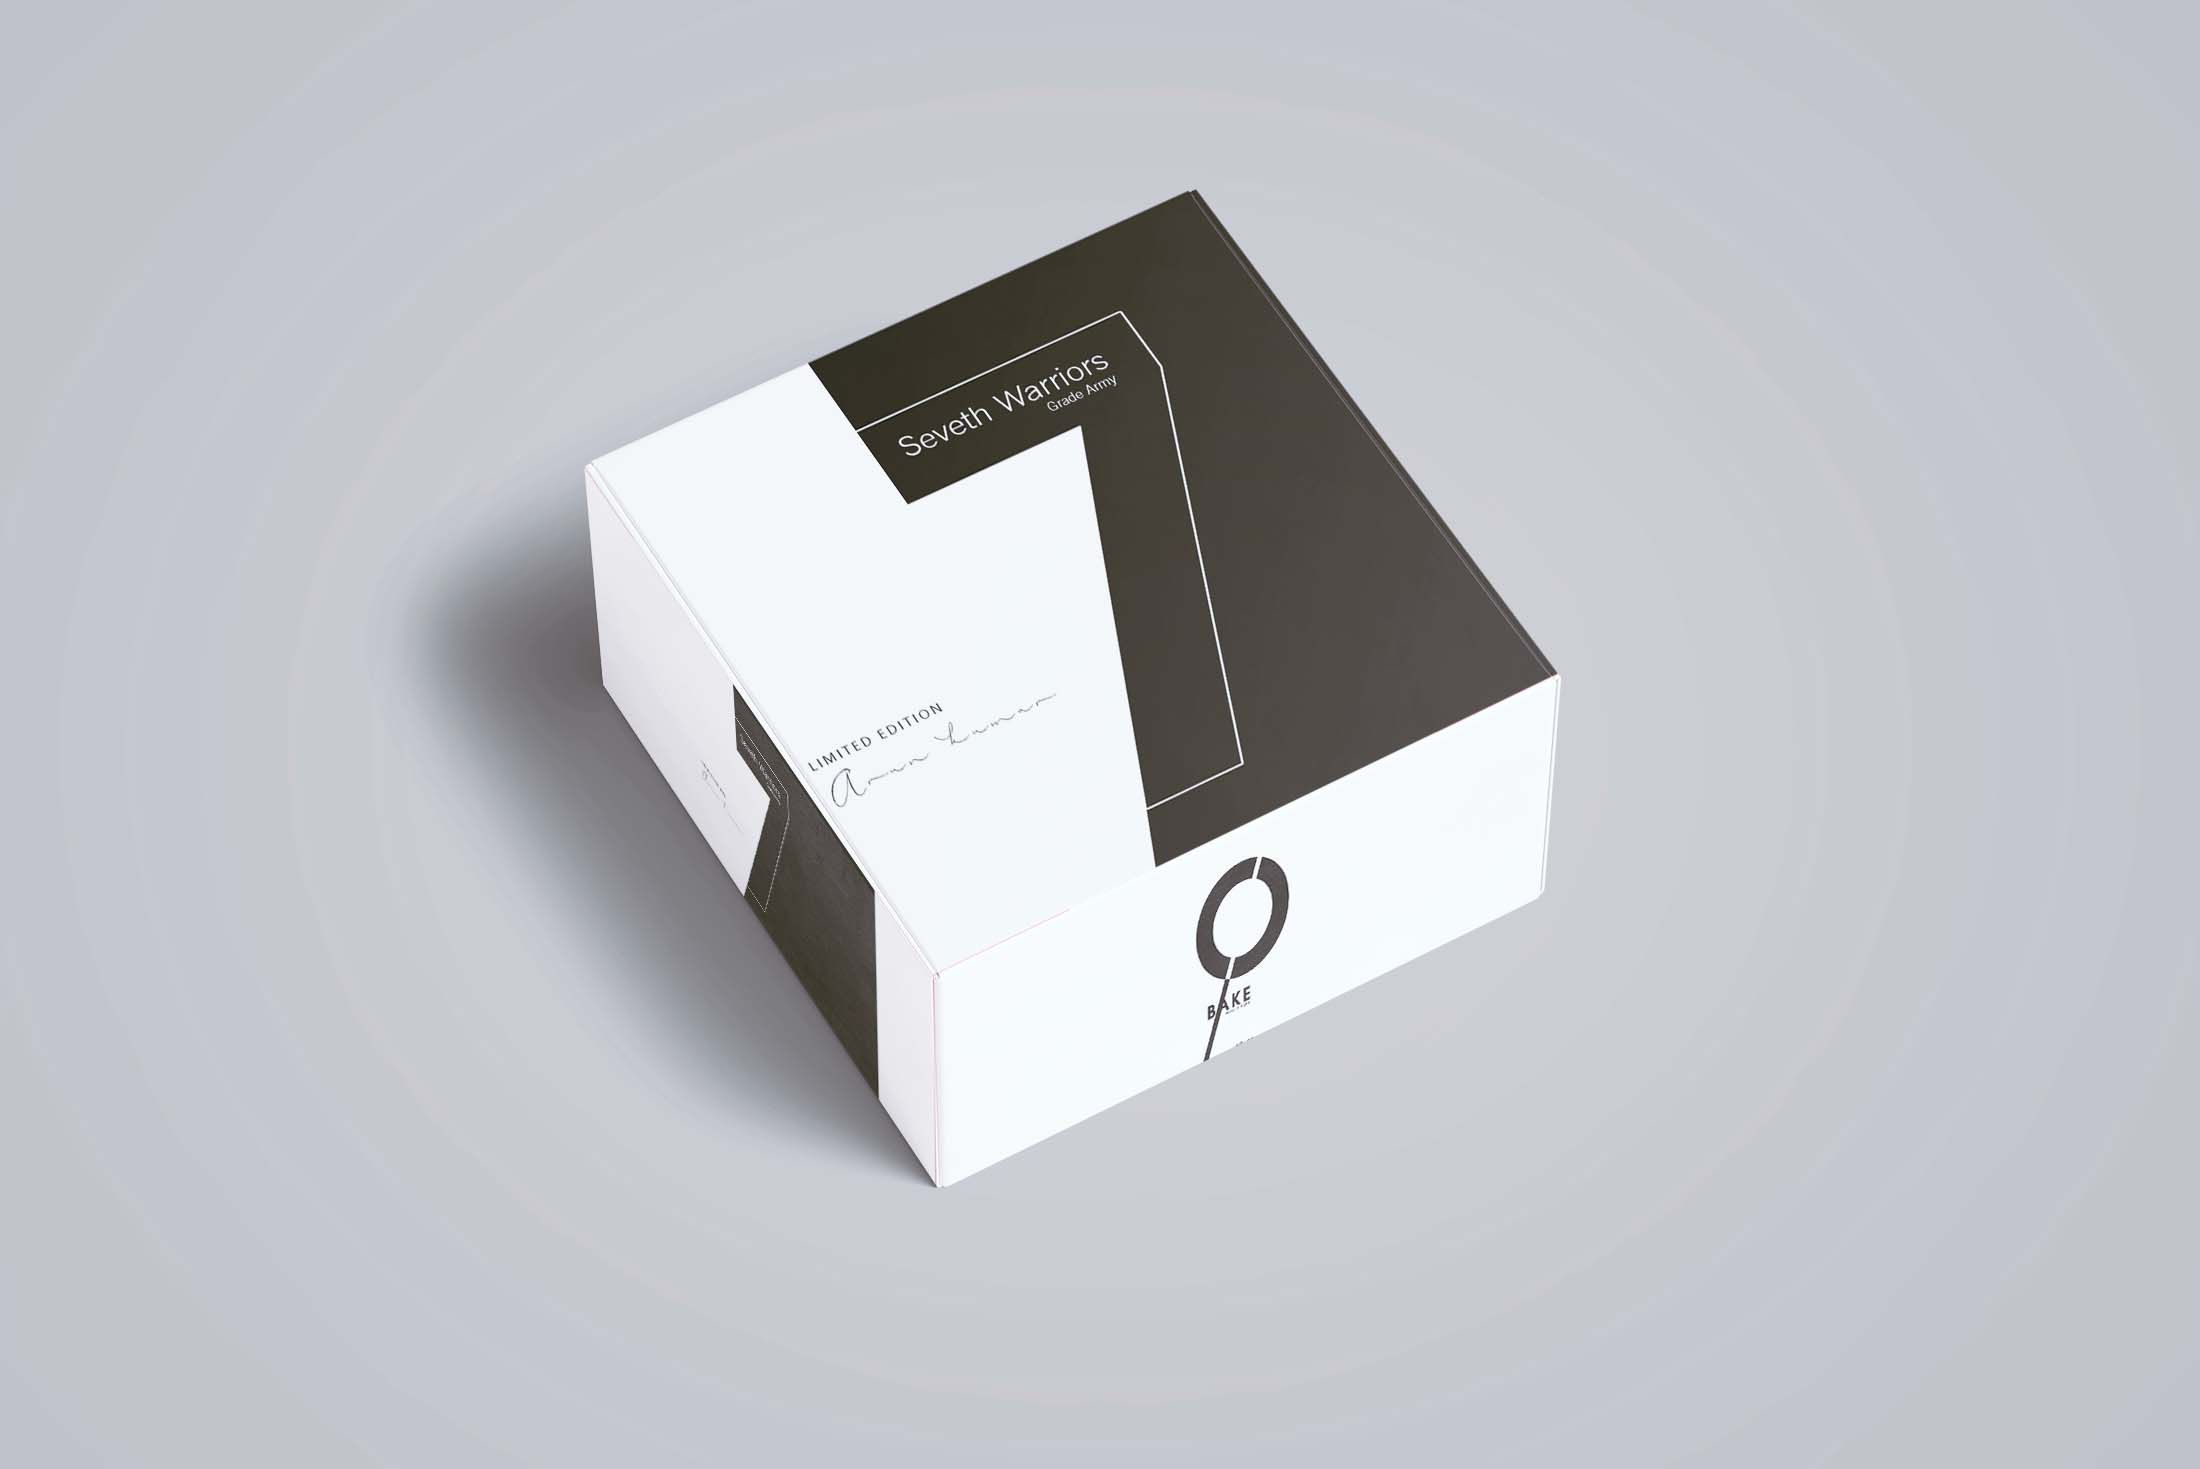 Download Free Shoes Square Box Packaging Mockup Packaging Mockup Logo Design Mockup Free Logo Mockup